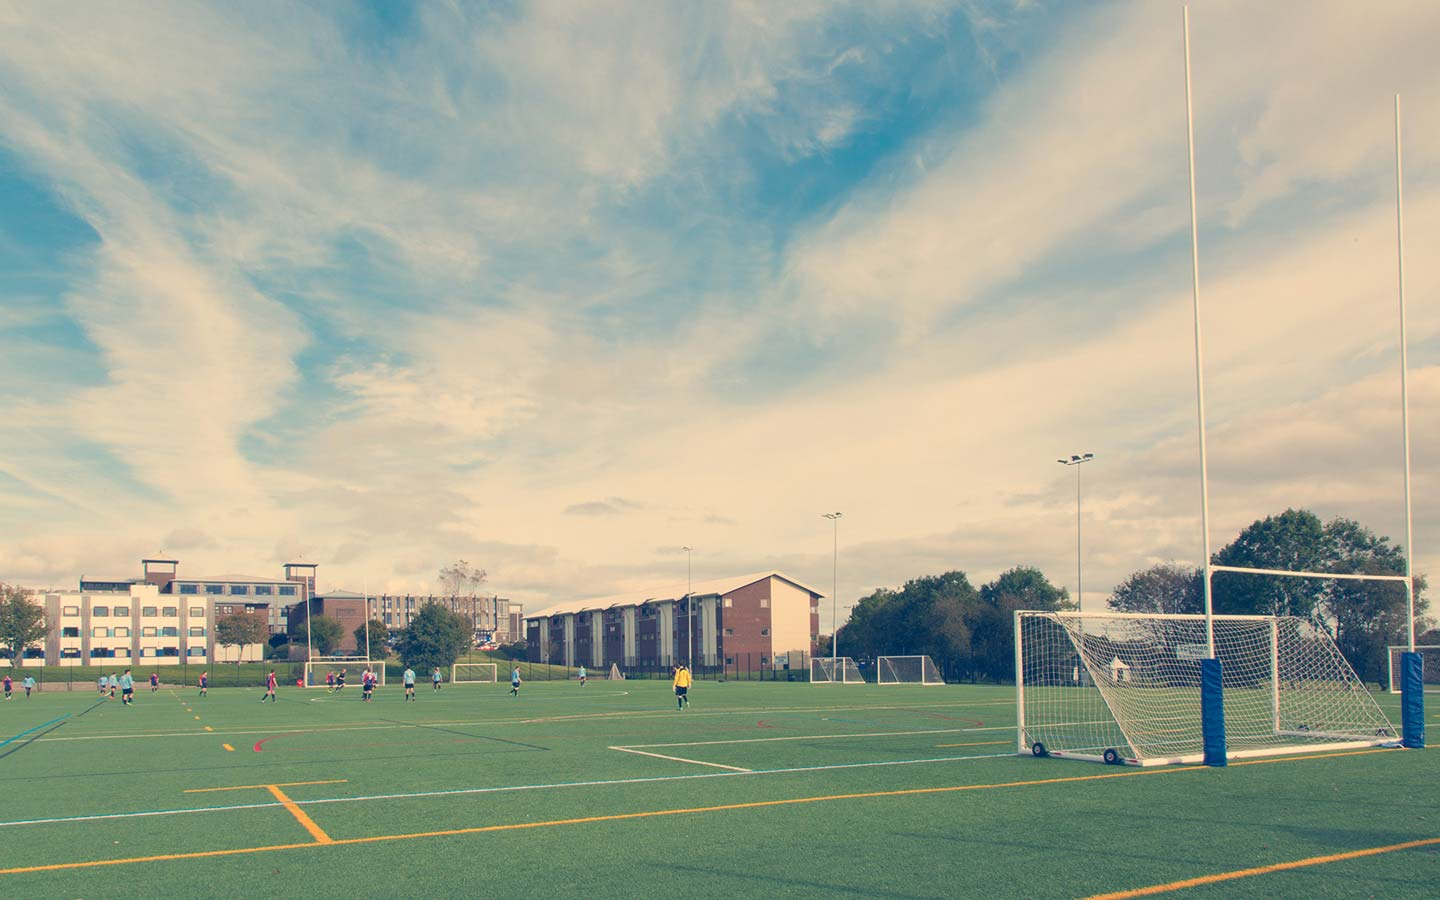 Sport Centre - Facilities & Services - 3G Pitch